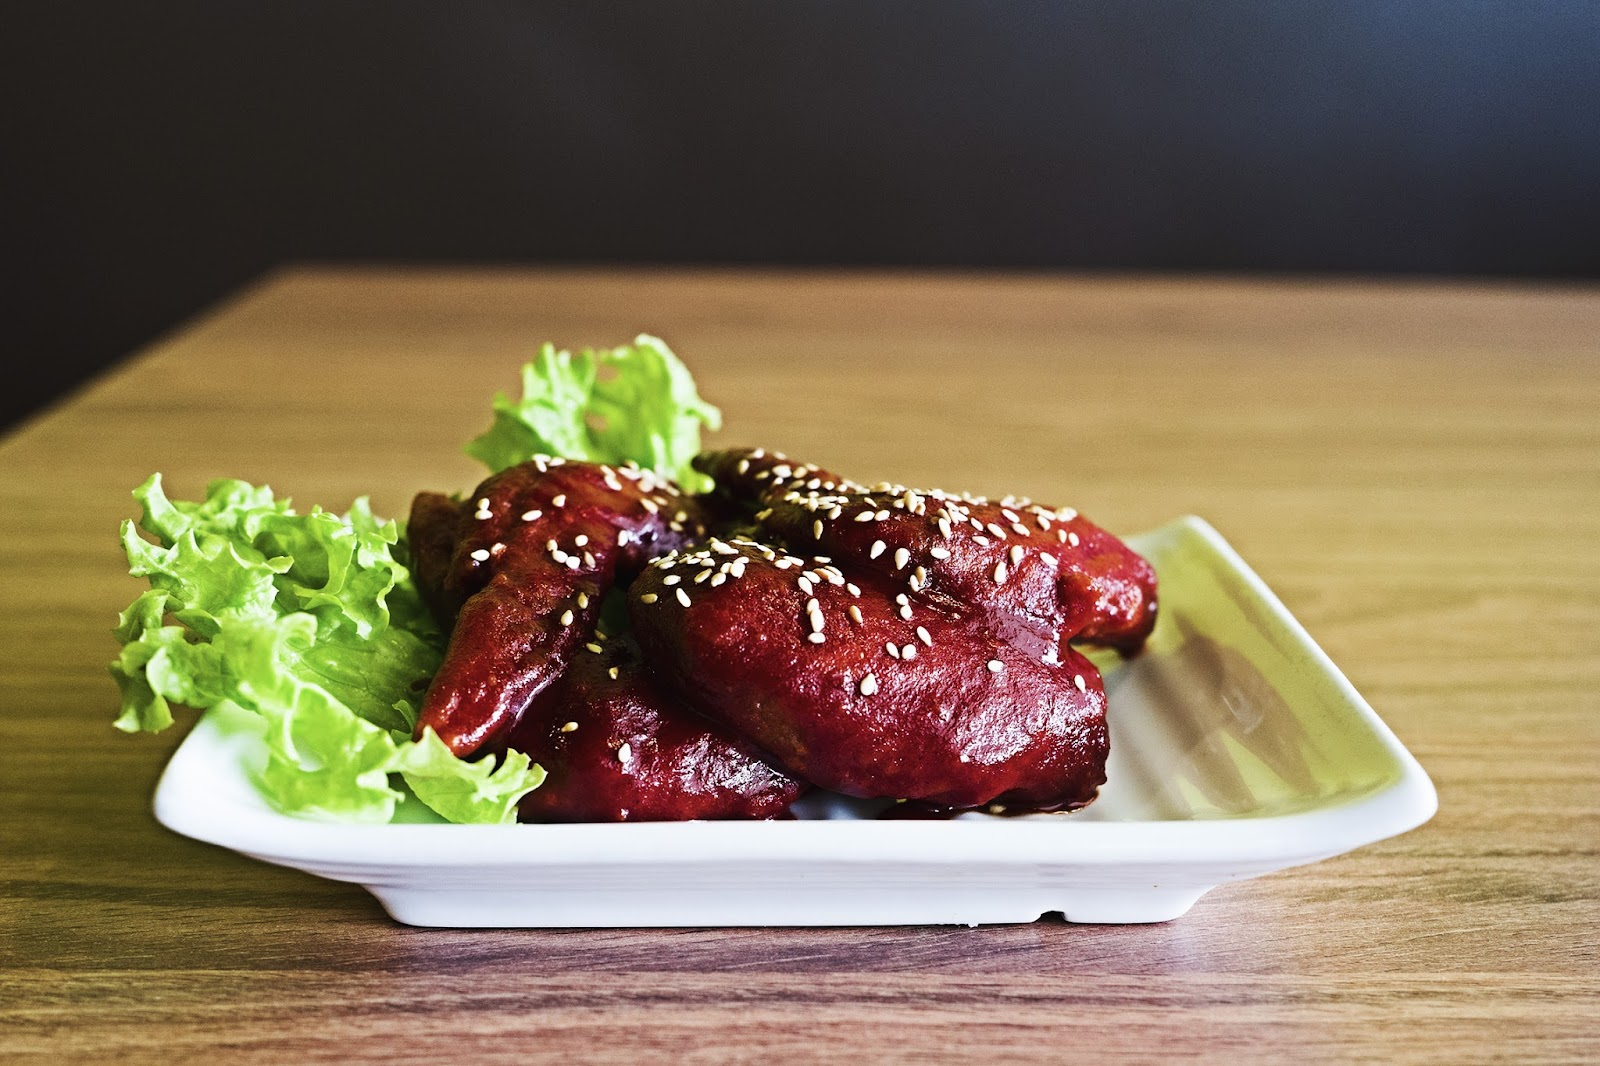 f-chickenwings-L1040905.jpg